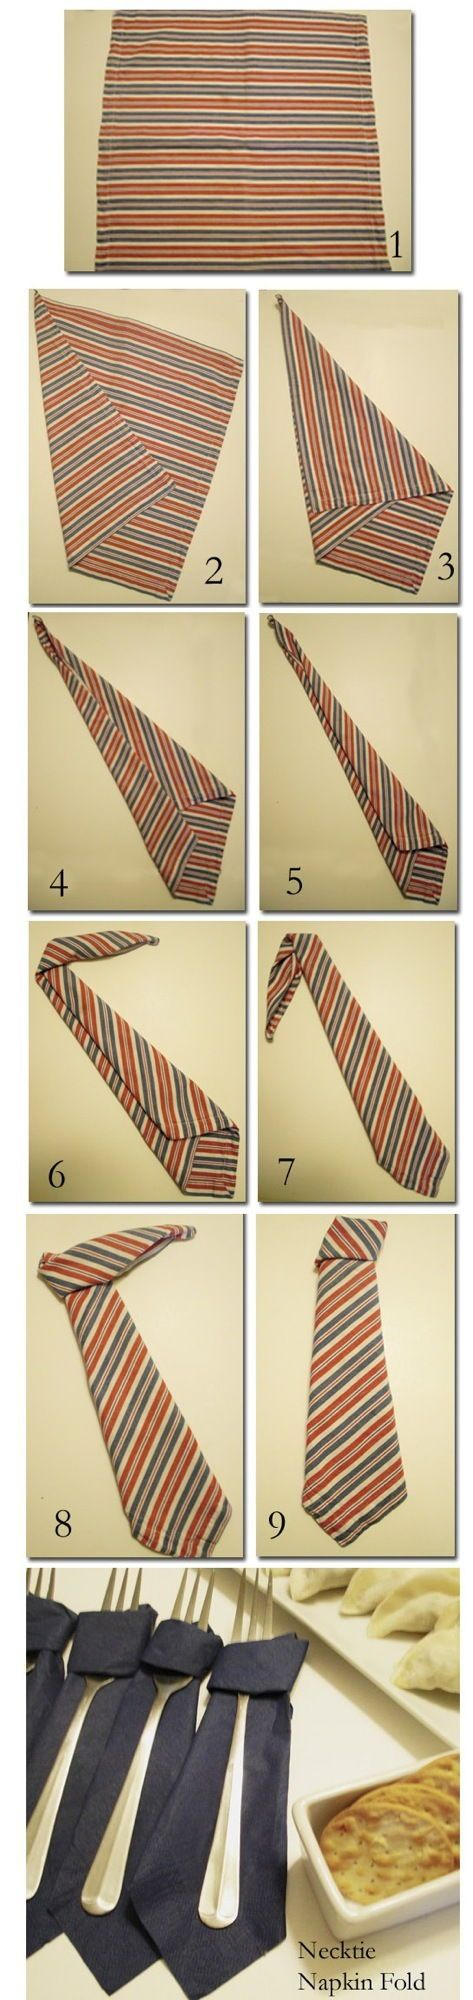 DIY Necktie Napkin Fold DIY Projects | UsefulDIY.com Follow Us on Facebook == http://www.facebook.com/UsefulDiy